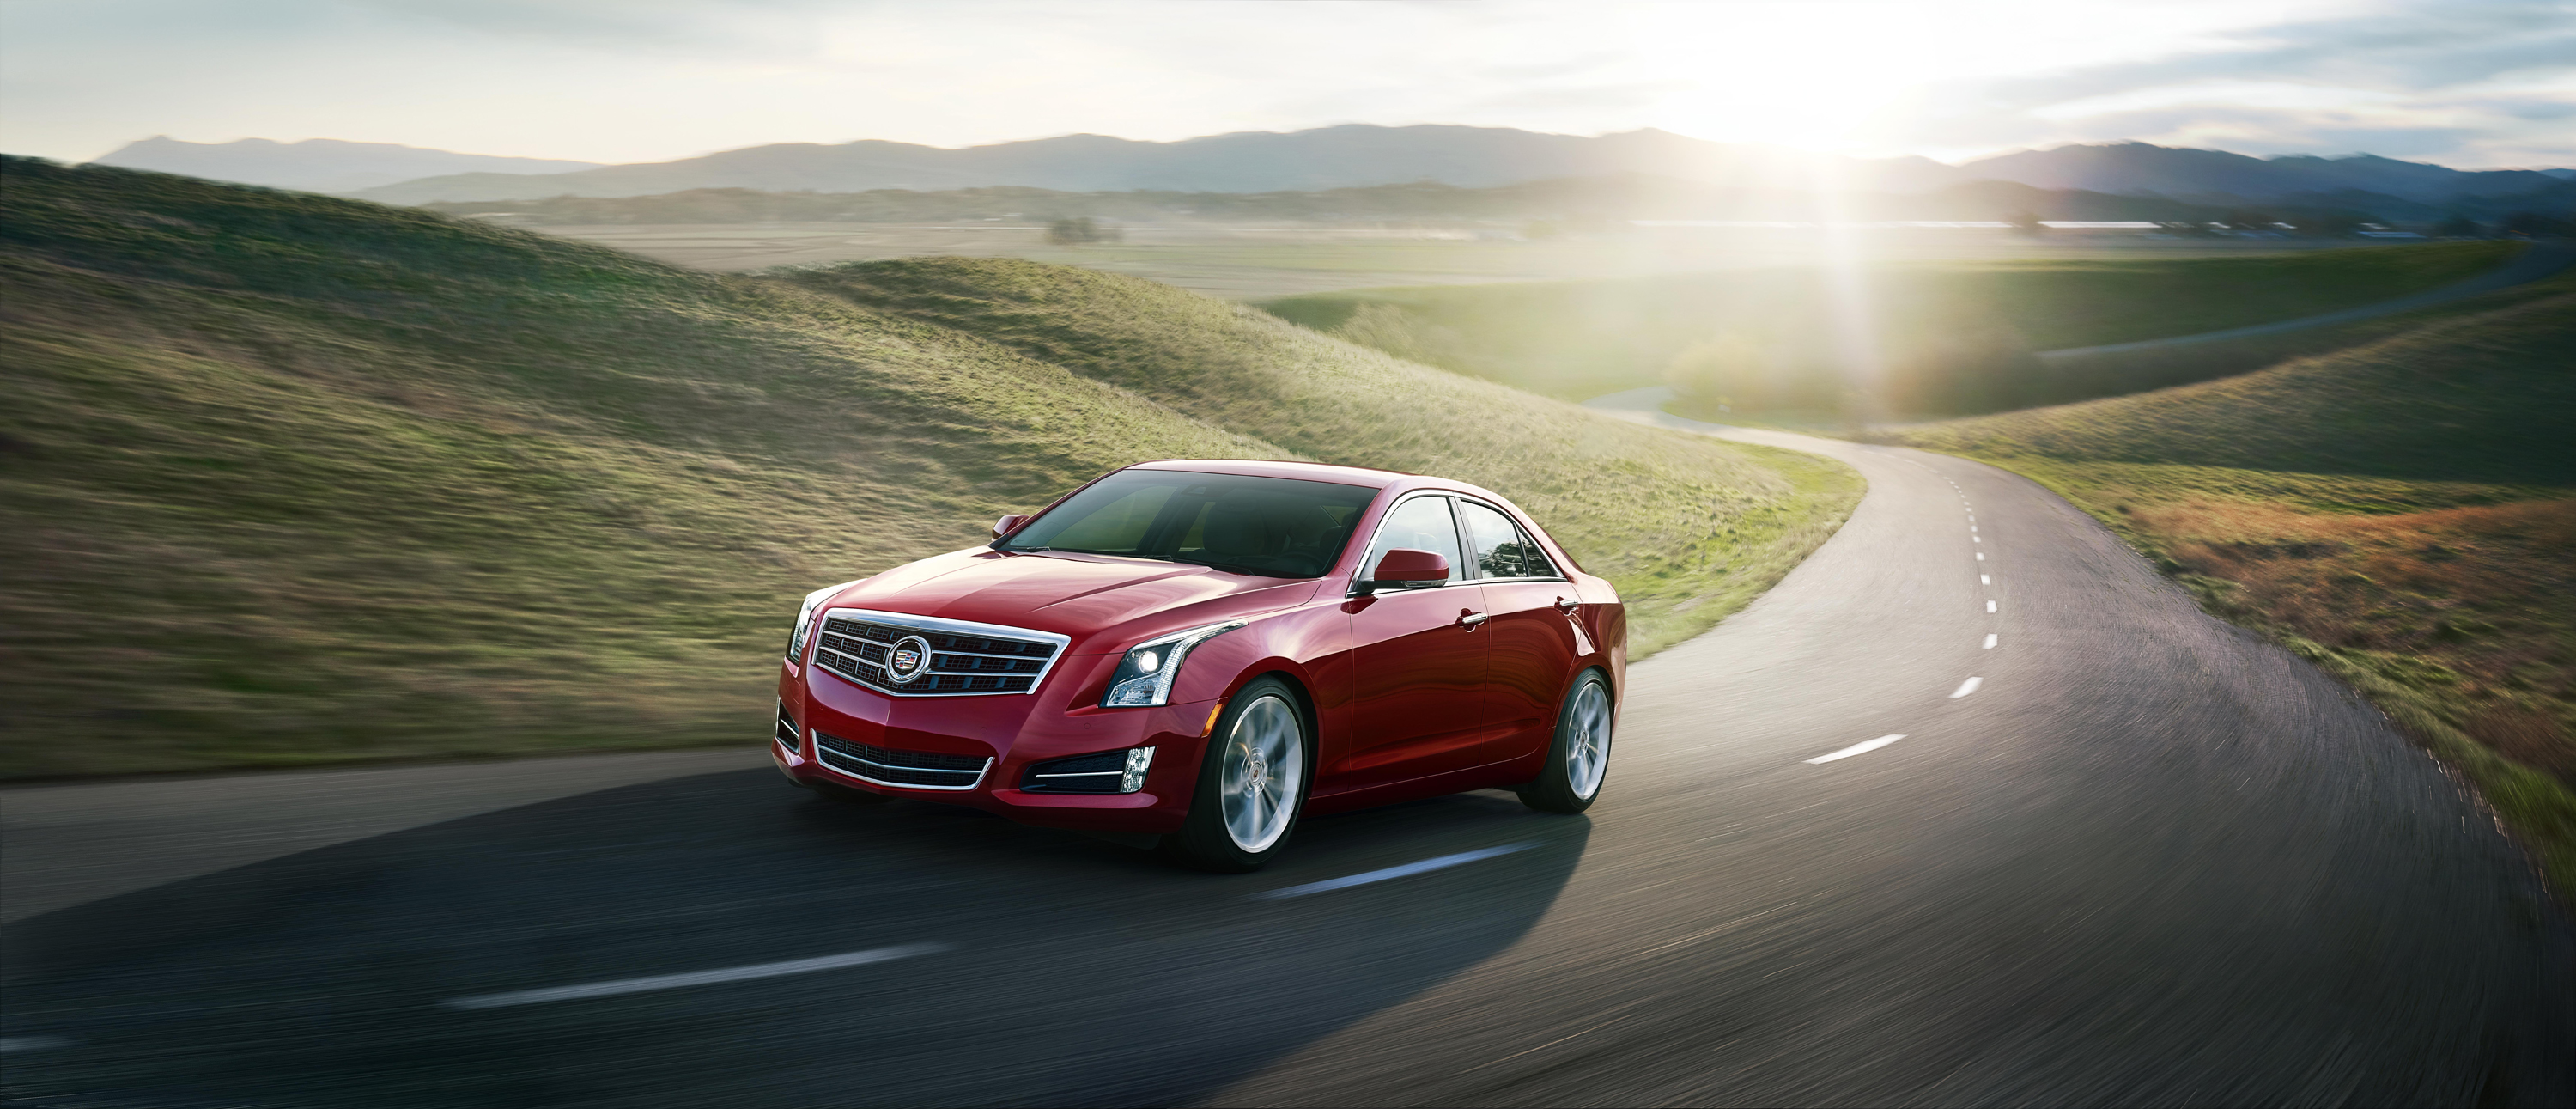 sedan news detail engine york to autoshows sounds gm en science content cadillac art and cts applies us media pages new sep